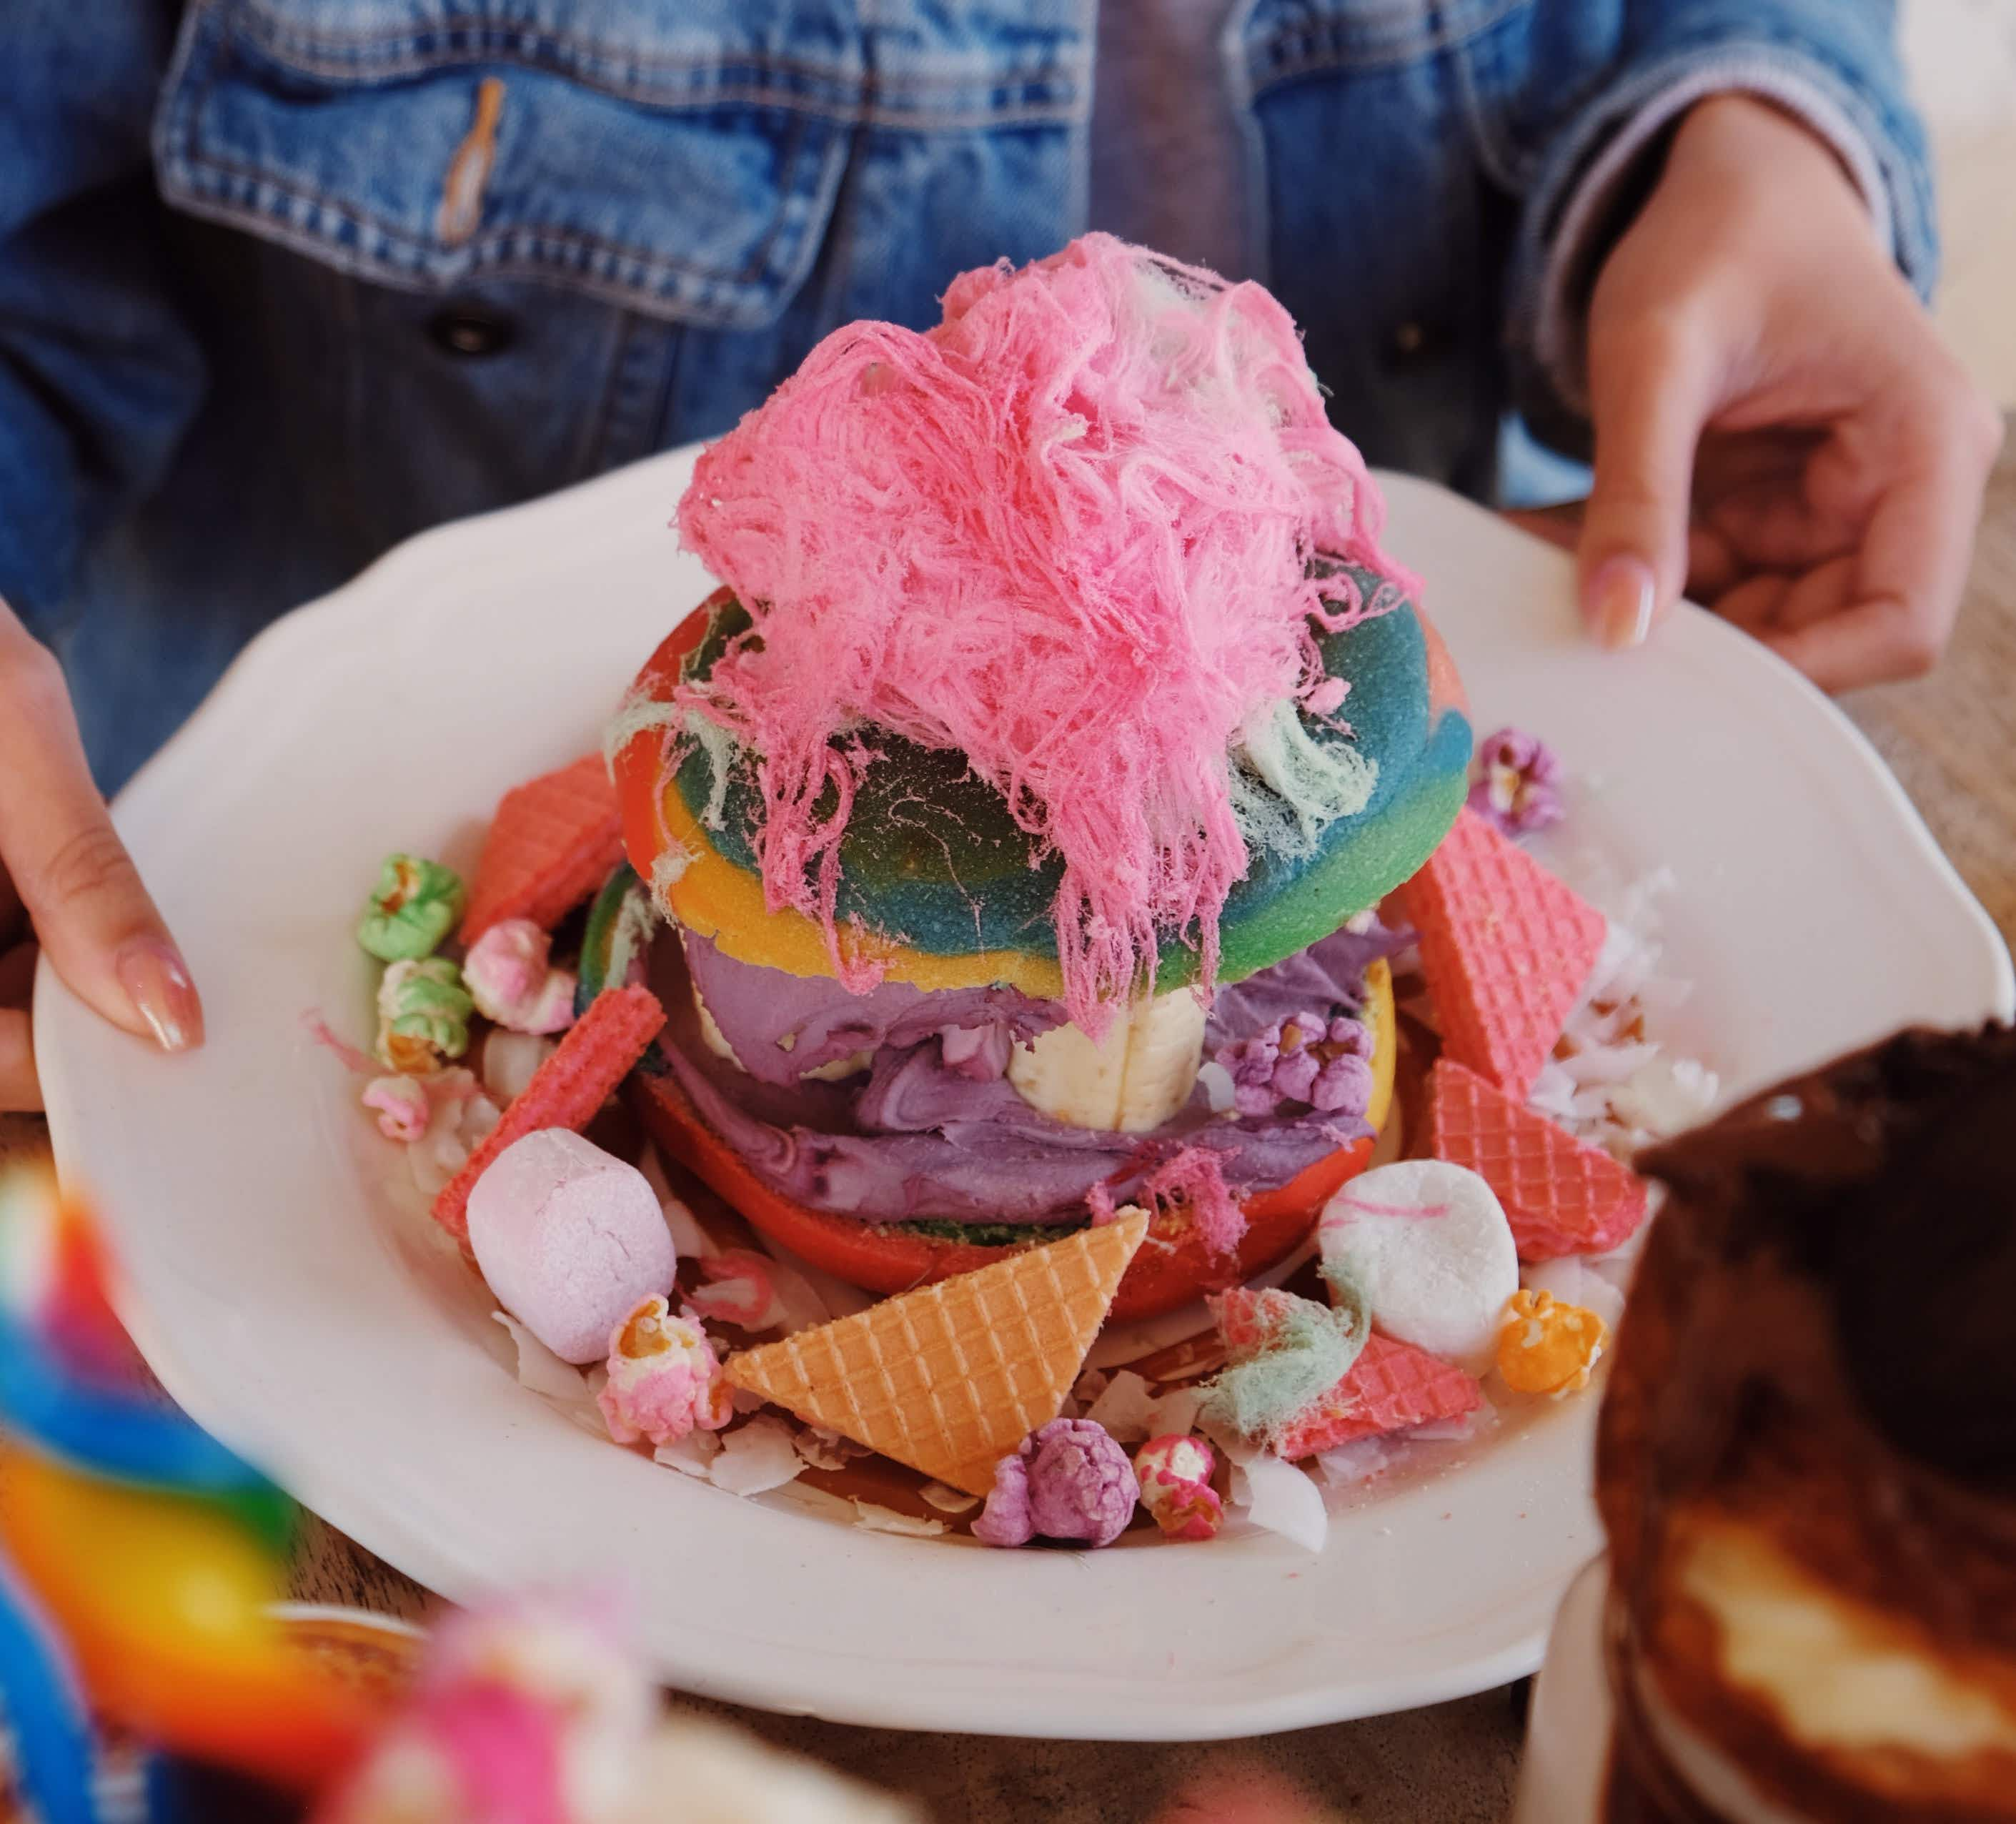 This Sydney breakfast inspired by Willy Wonka will give you the biggest sugar rush